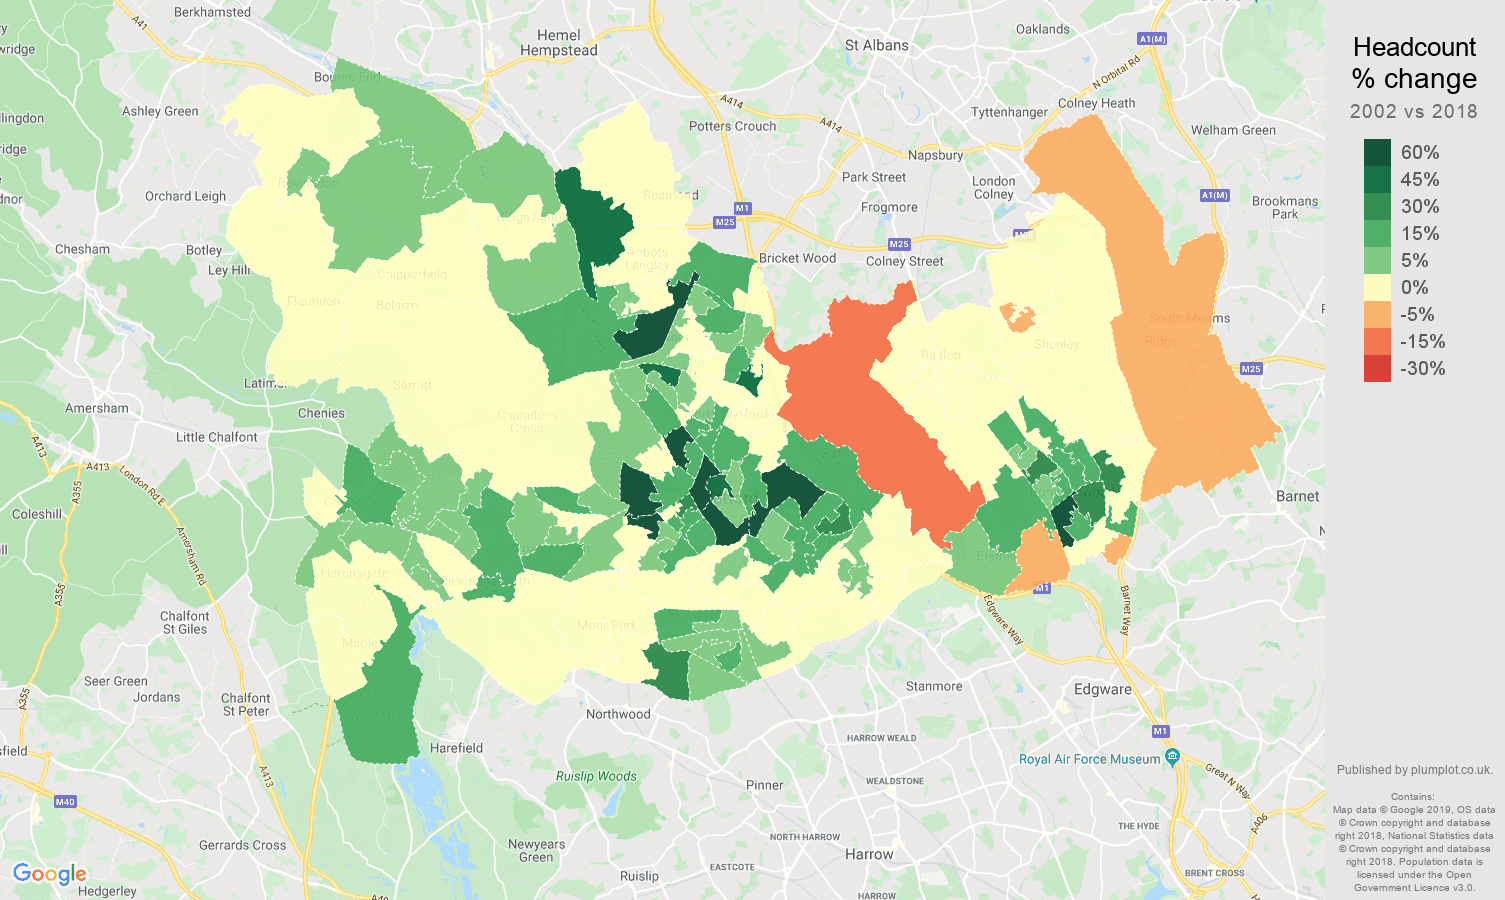 Watford headcount change map